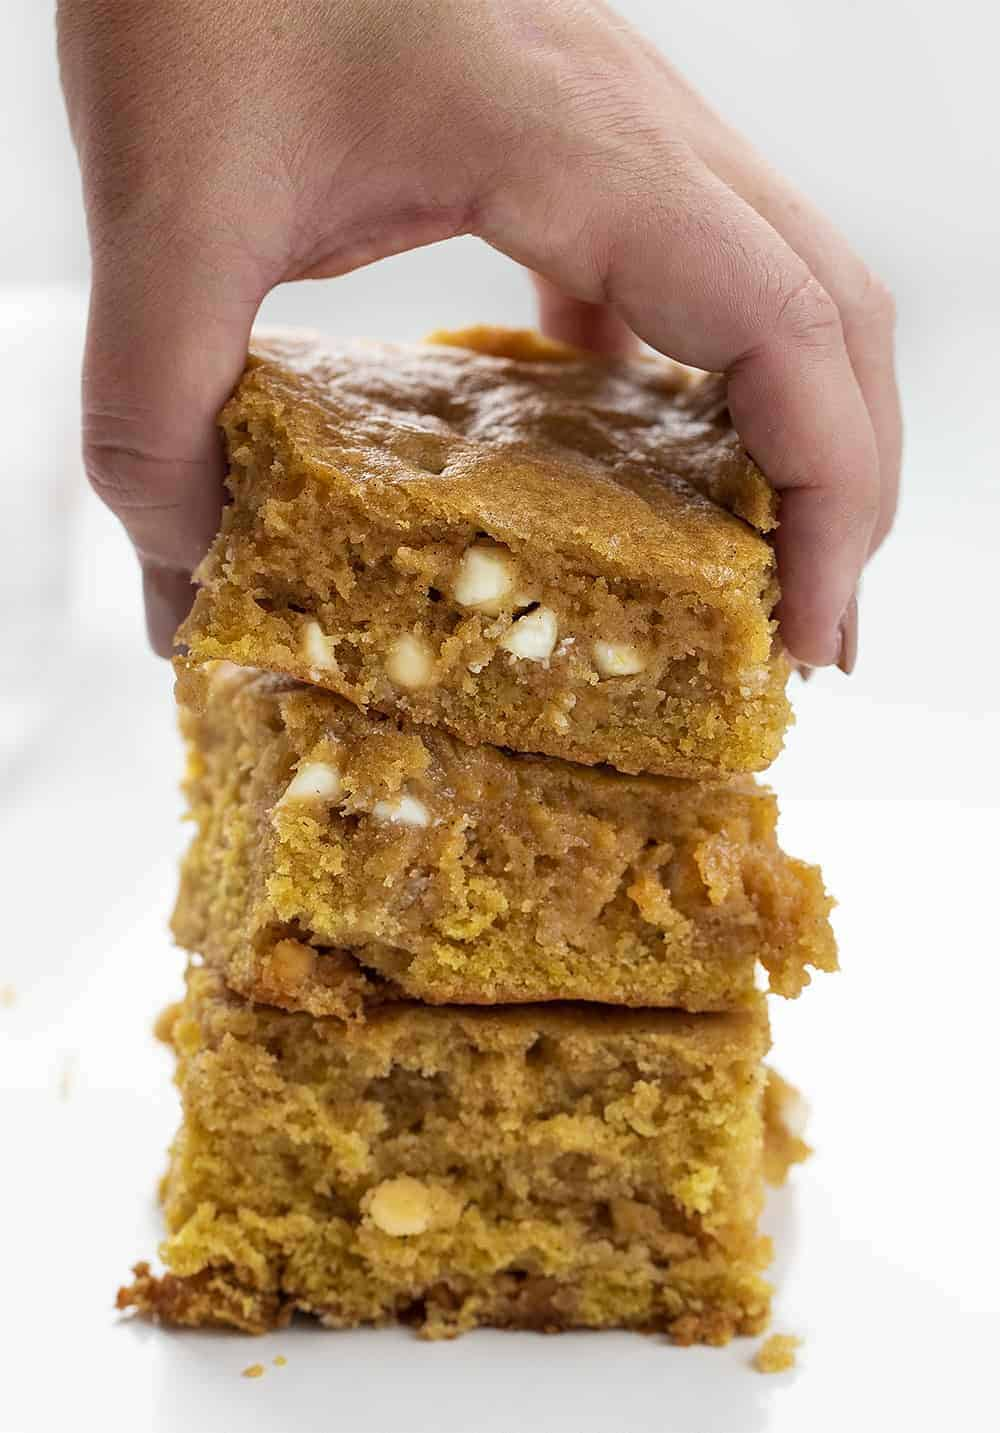 Handing Picking up Pumpkin Spice Snack Cake that is Stacked